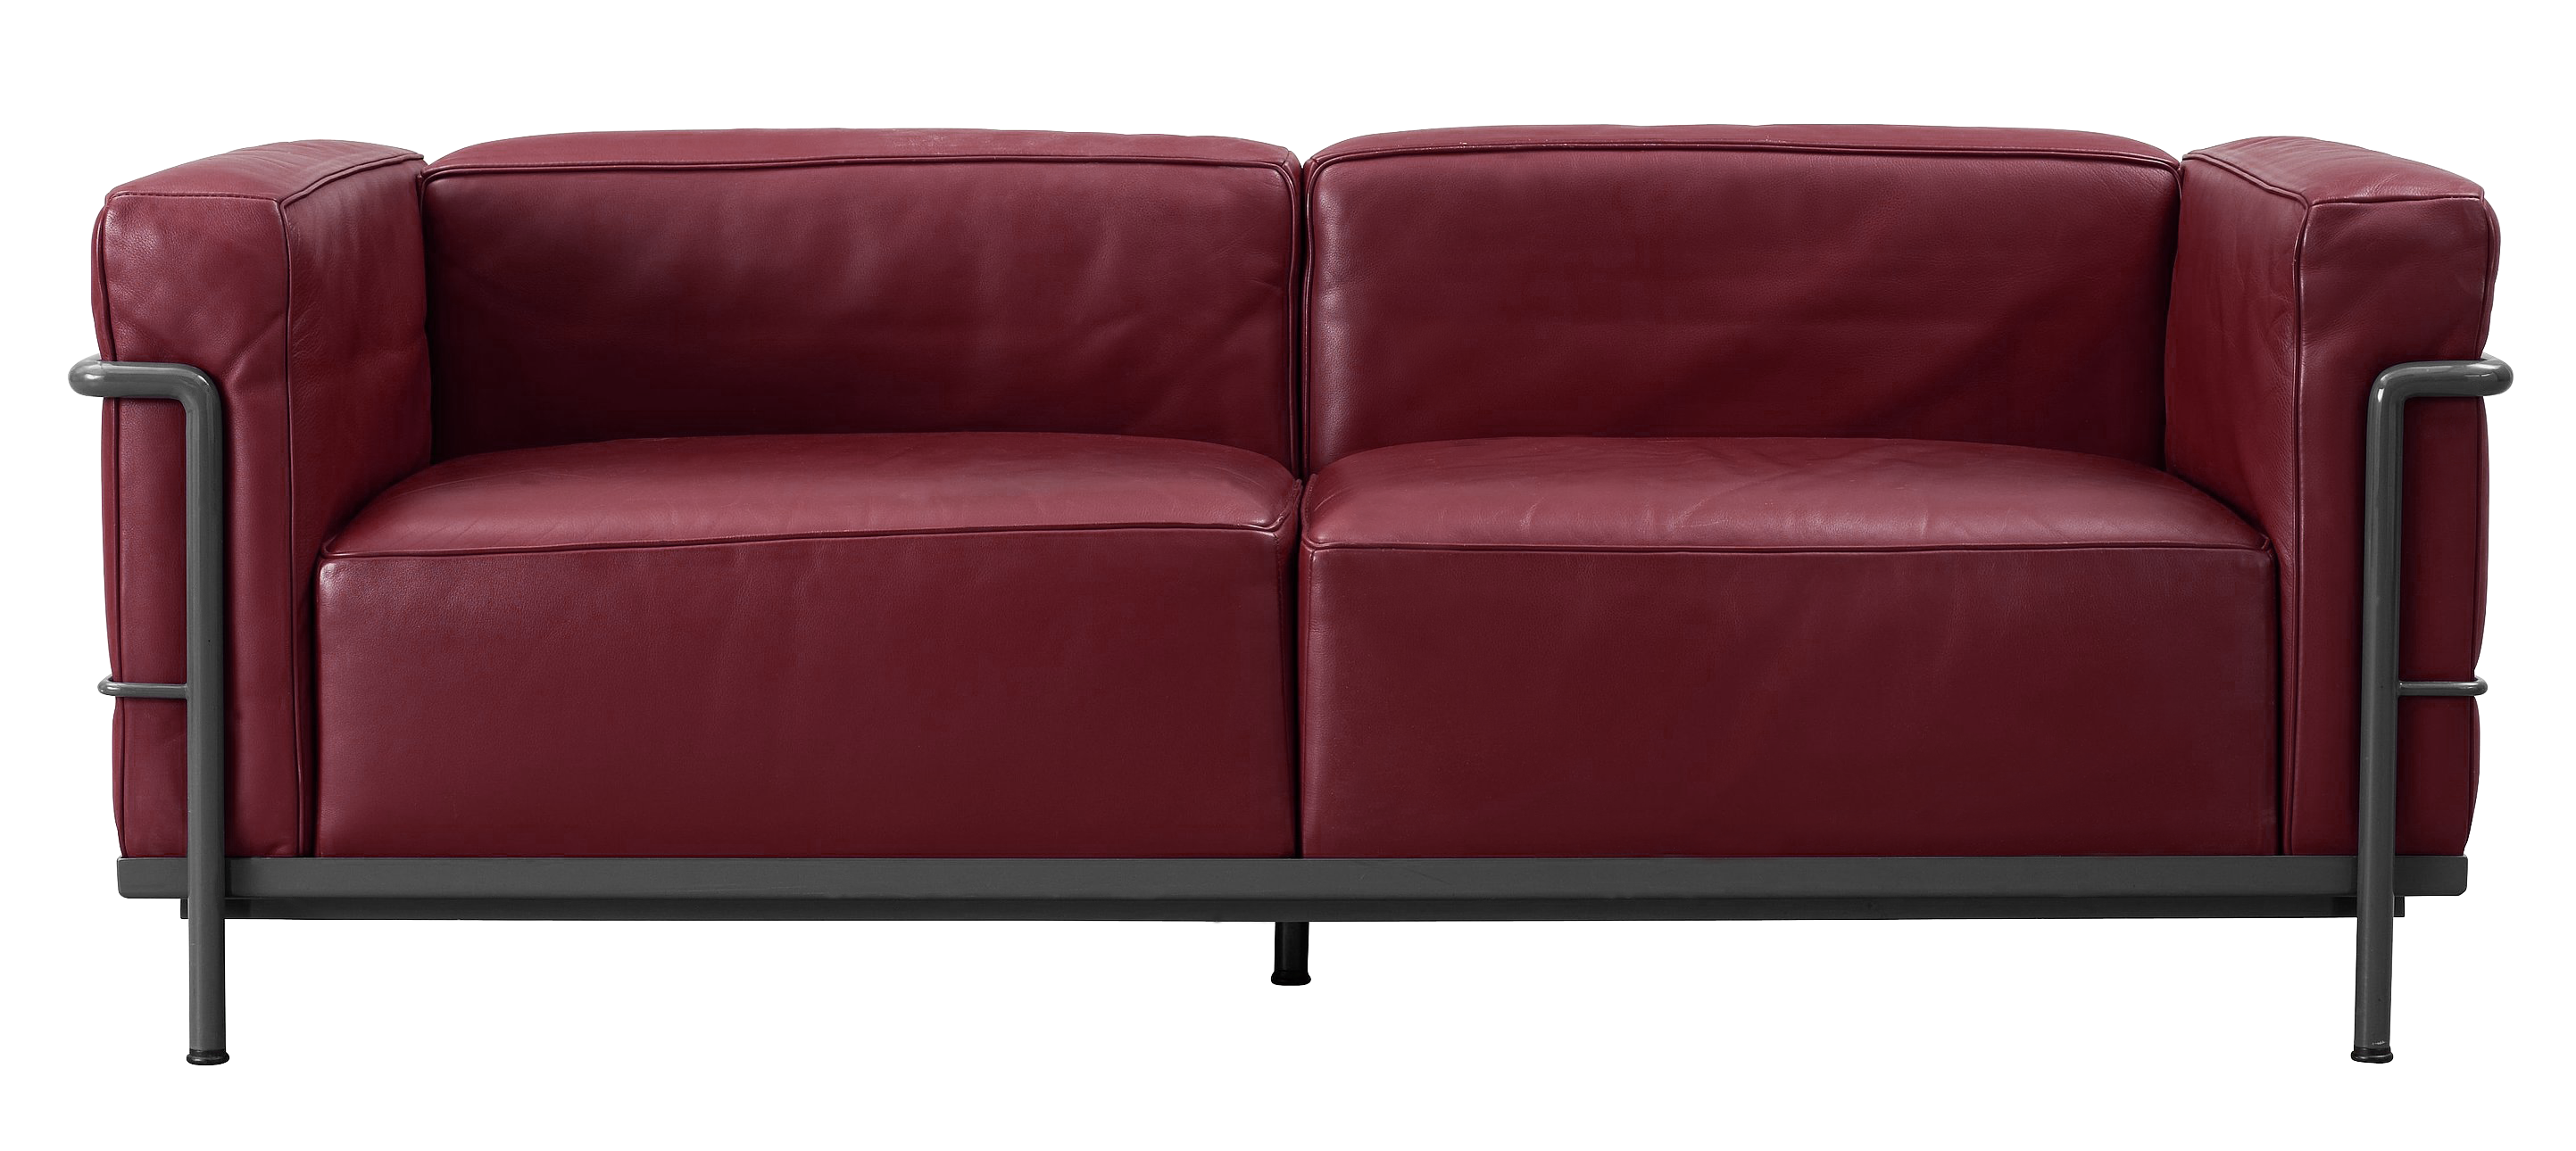 Leather lobby png picture. Furniture clipart red couch